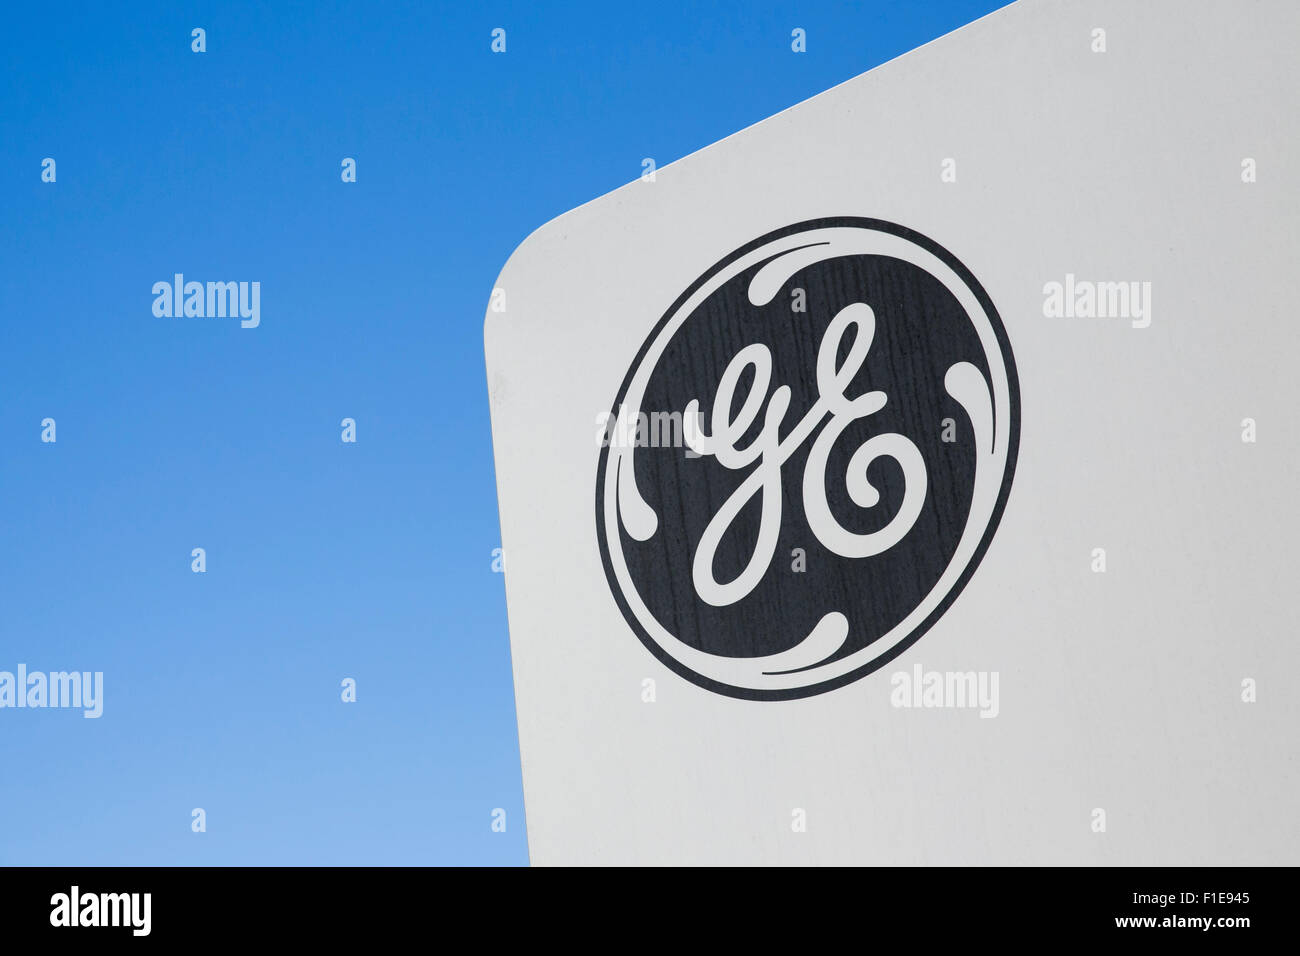 A logo sign outside of the general electric ge appliance park a logo sign outside of the general electric ge appliance park manufacturing facility in louisville kentucky on august 25 201 biocorpaavc Gallery